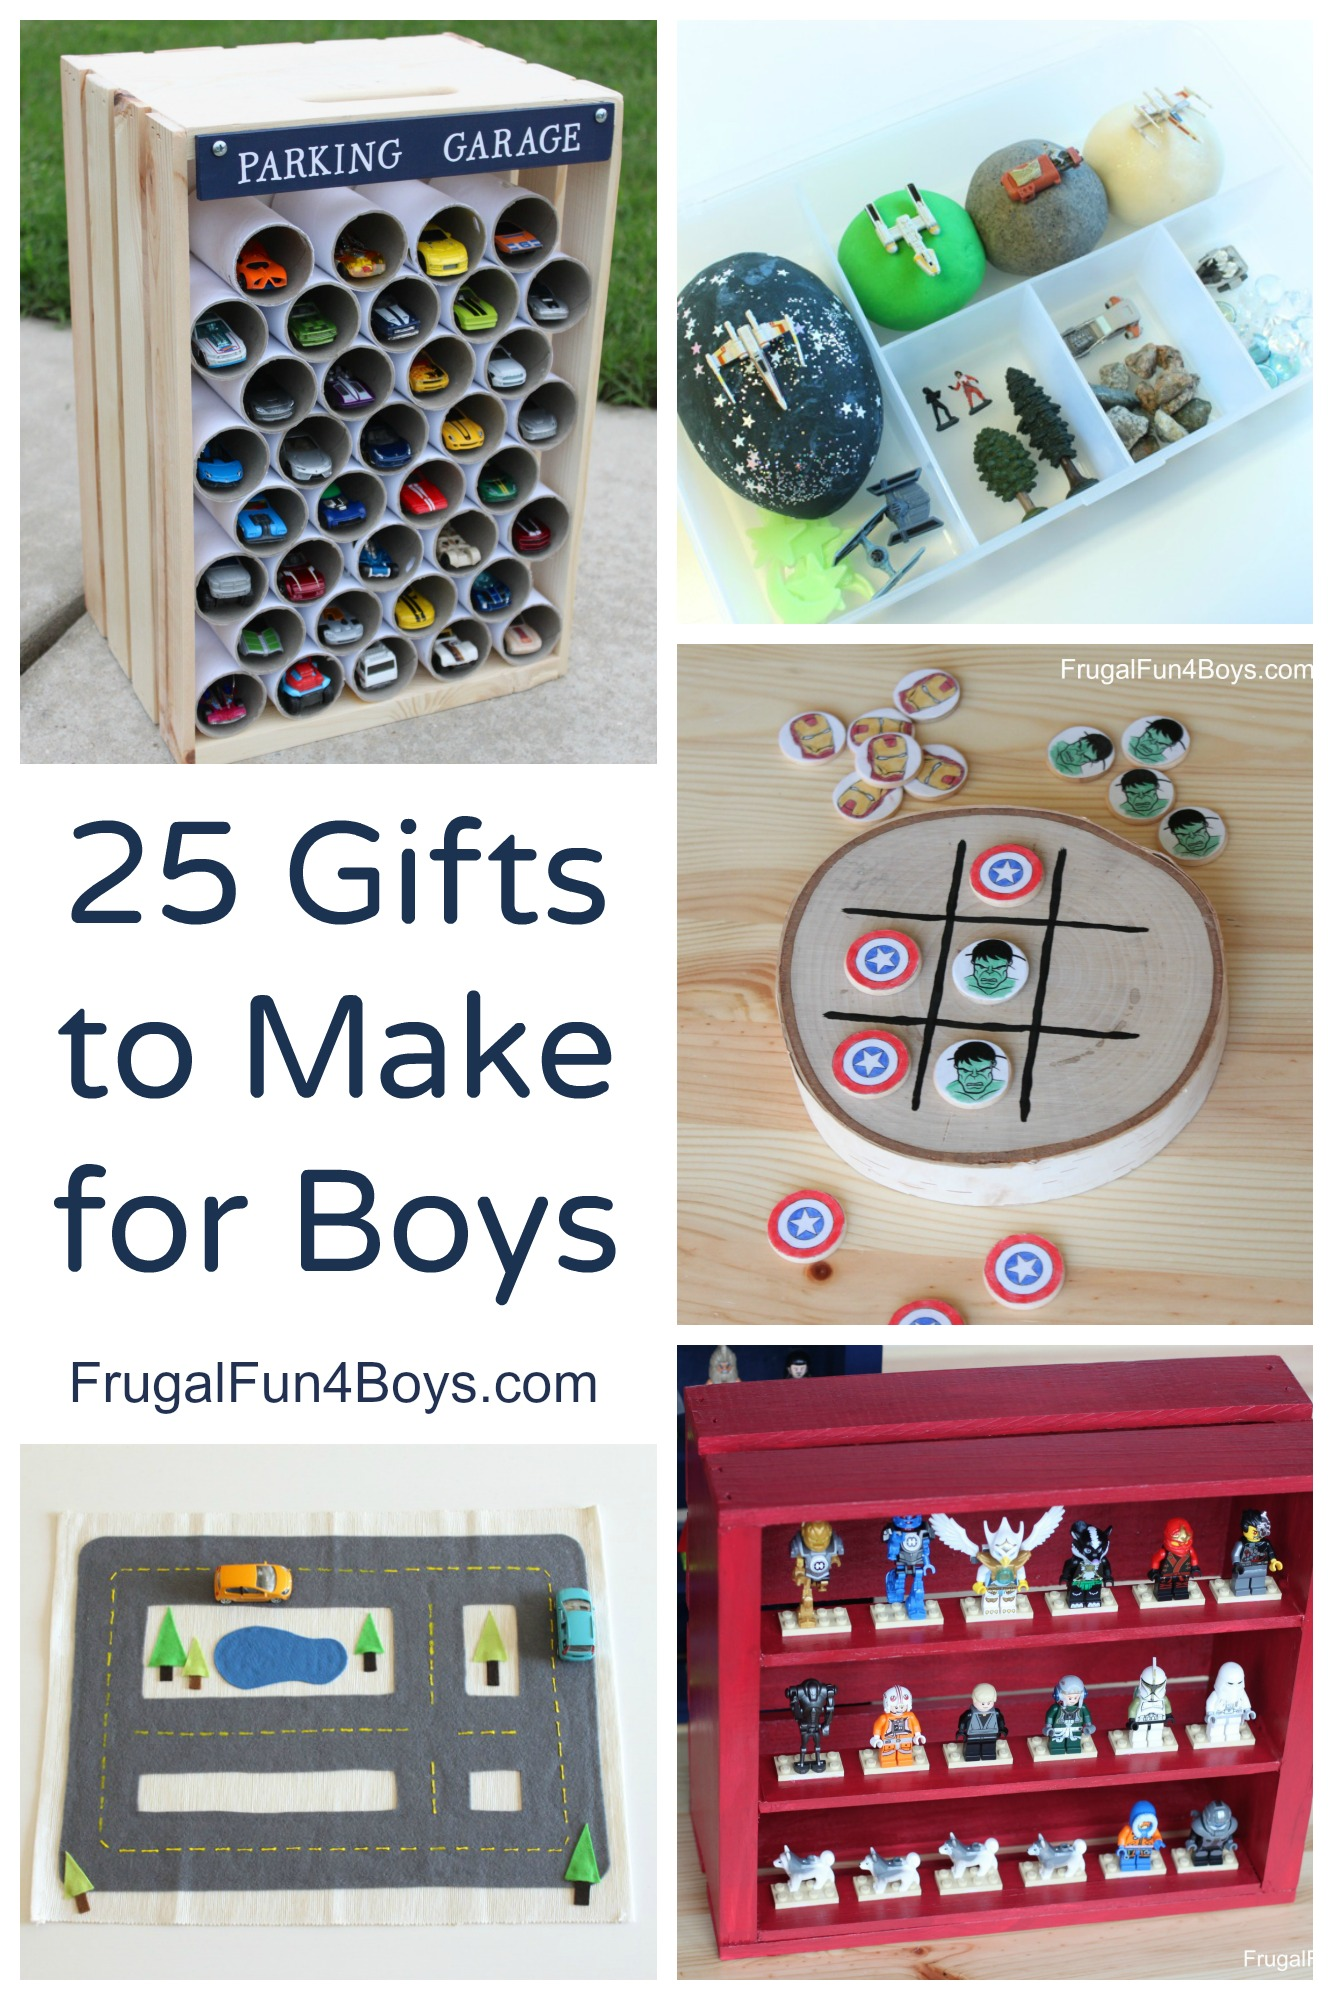 25 more homemade gifts to make for boys frugal fun for for How to make easy gifts